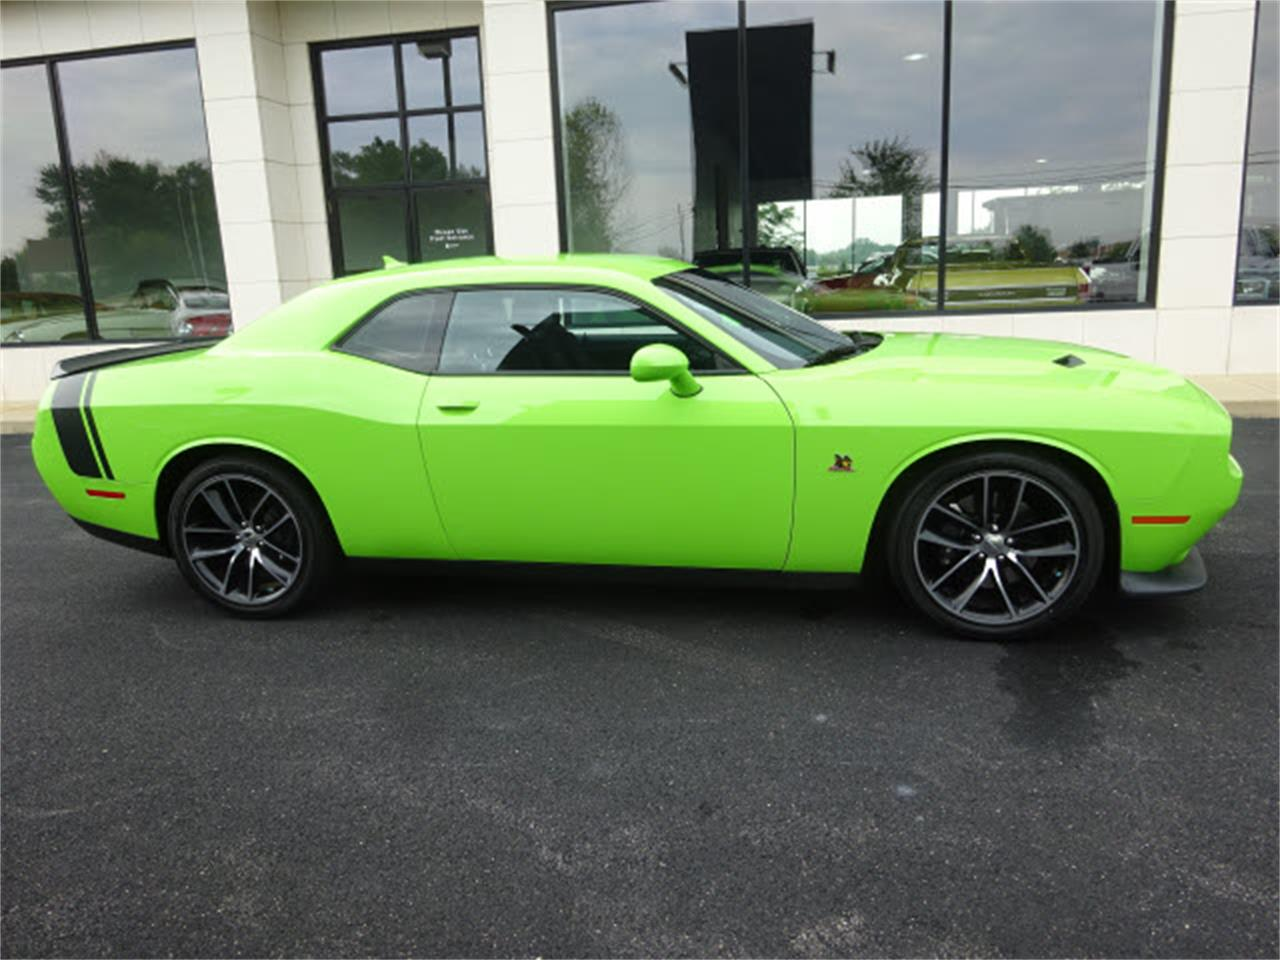 Large Picture of '15 Dodge Challenger located in Ohio - $33,999.00 - LHOO